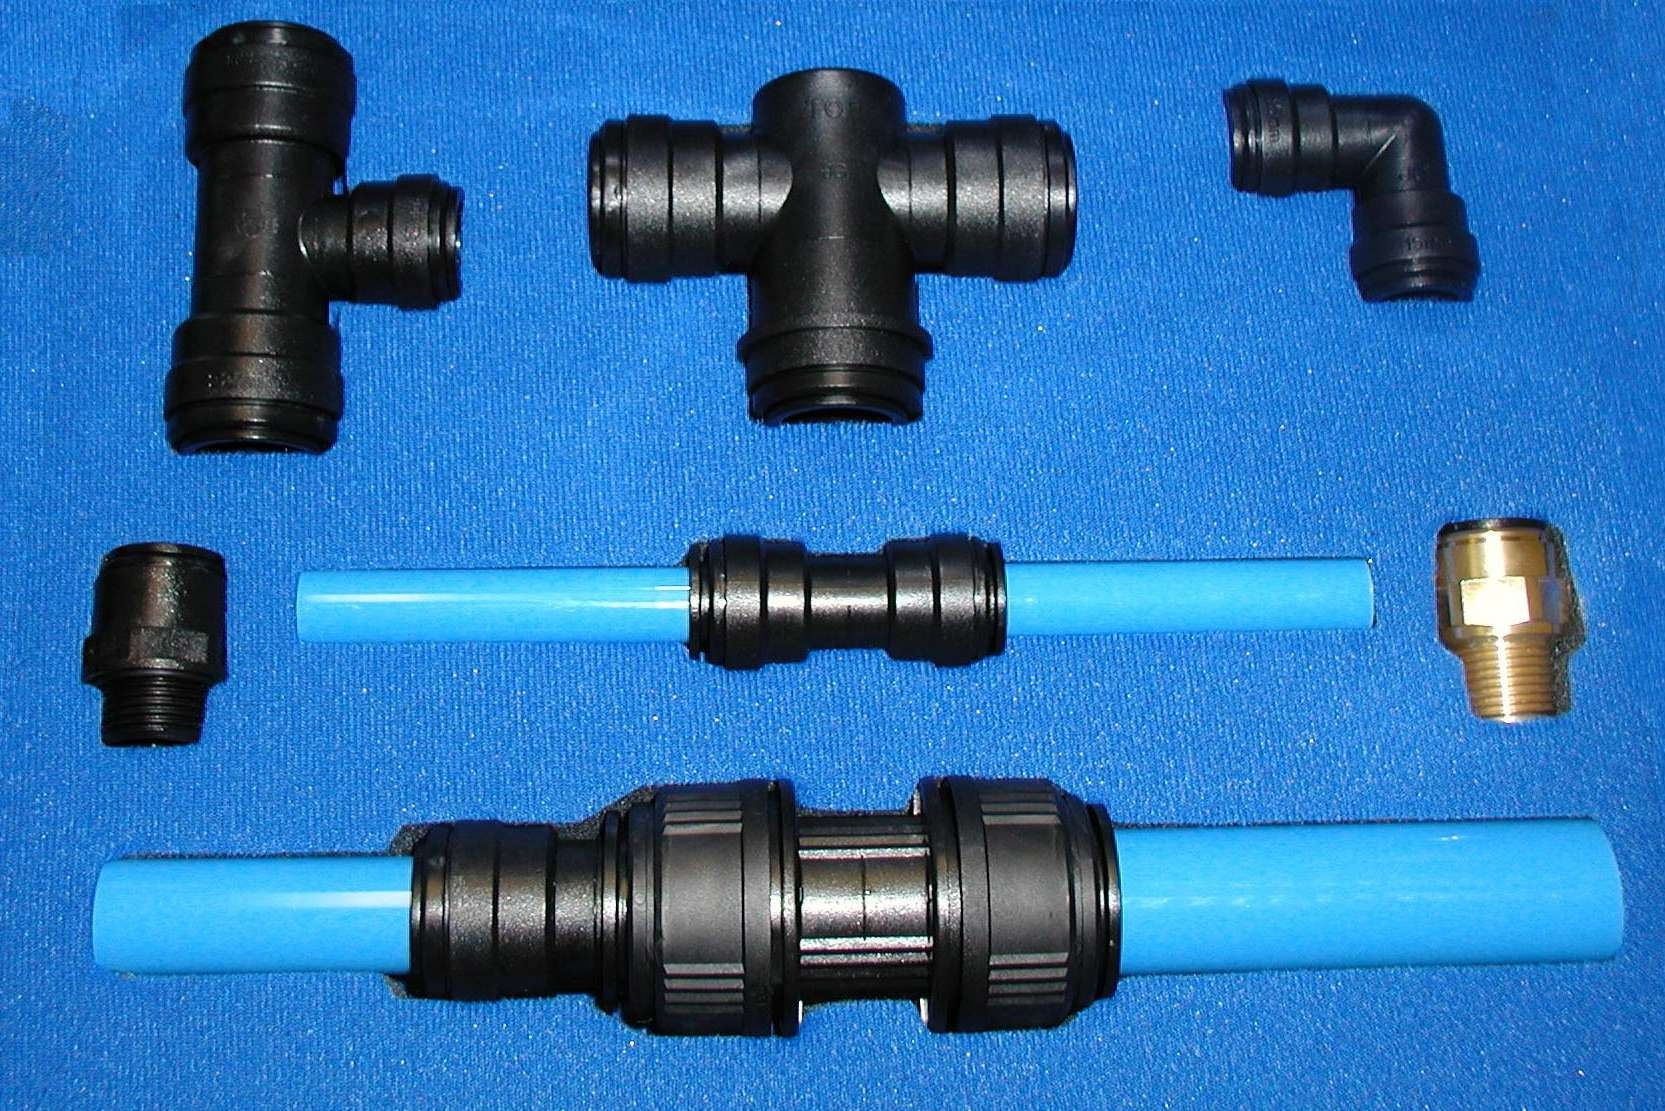 New line of push fit fittings for compressed air systems